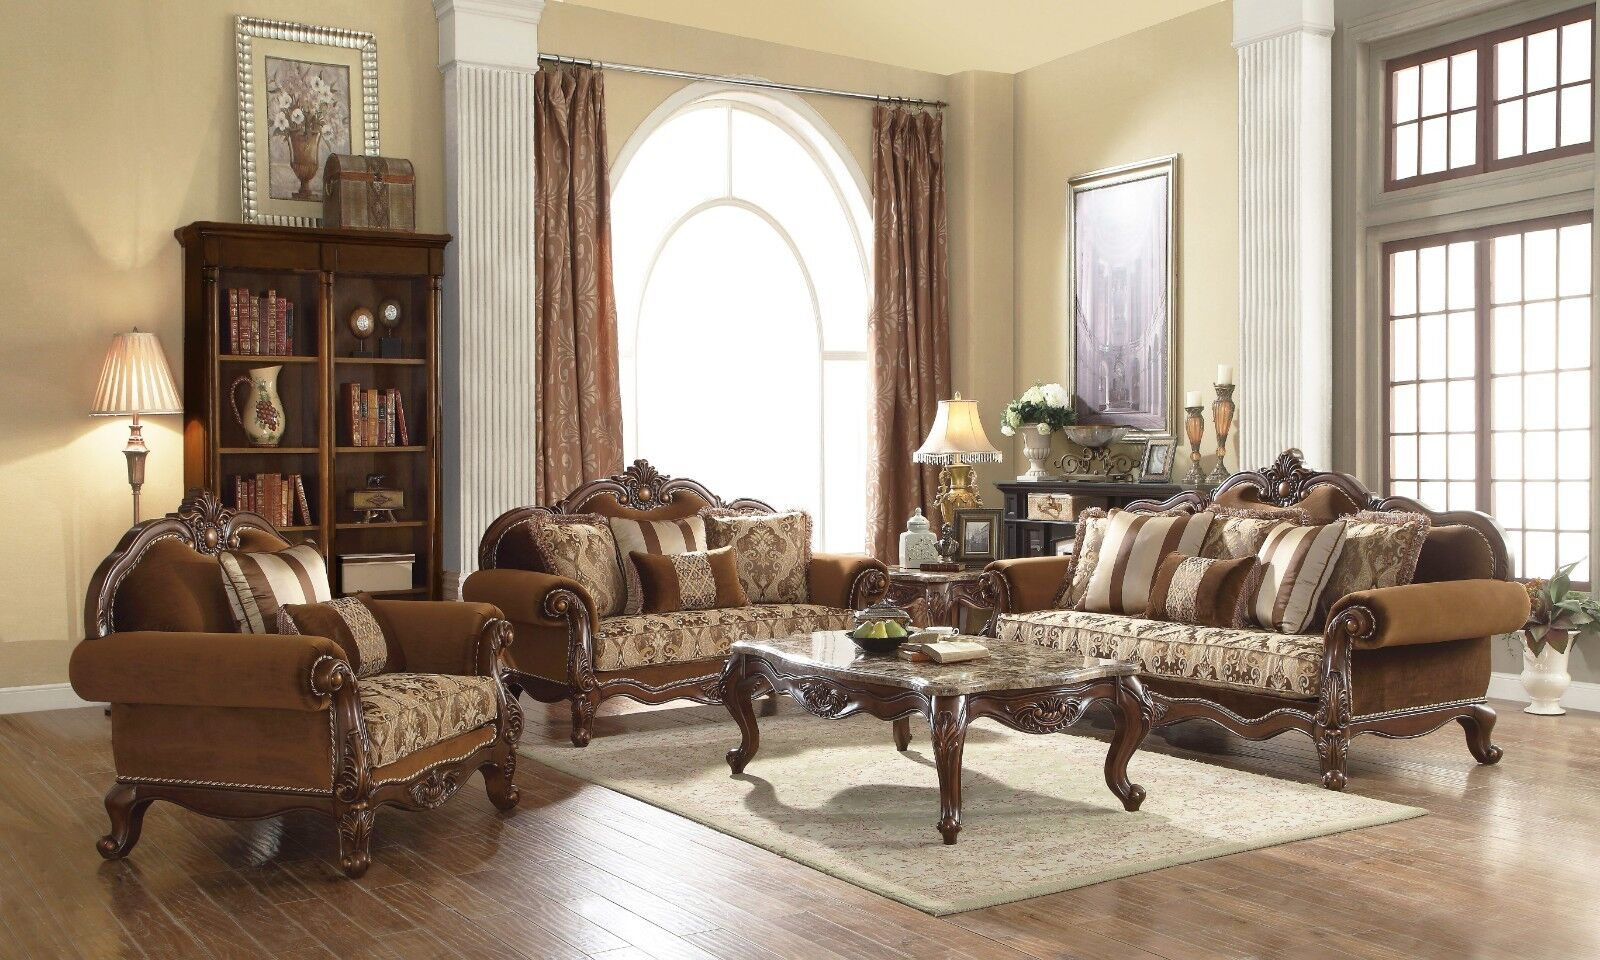 Details about Traditional Brown Formal Living Room Furniture 3 pc Sofa Set  Carved Wood Frames